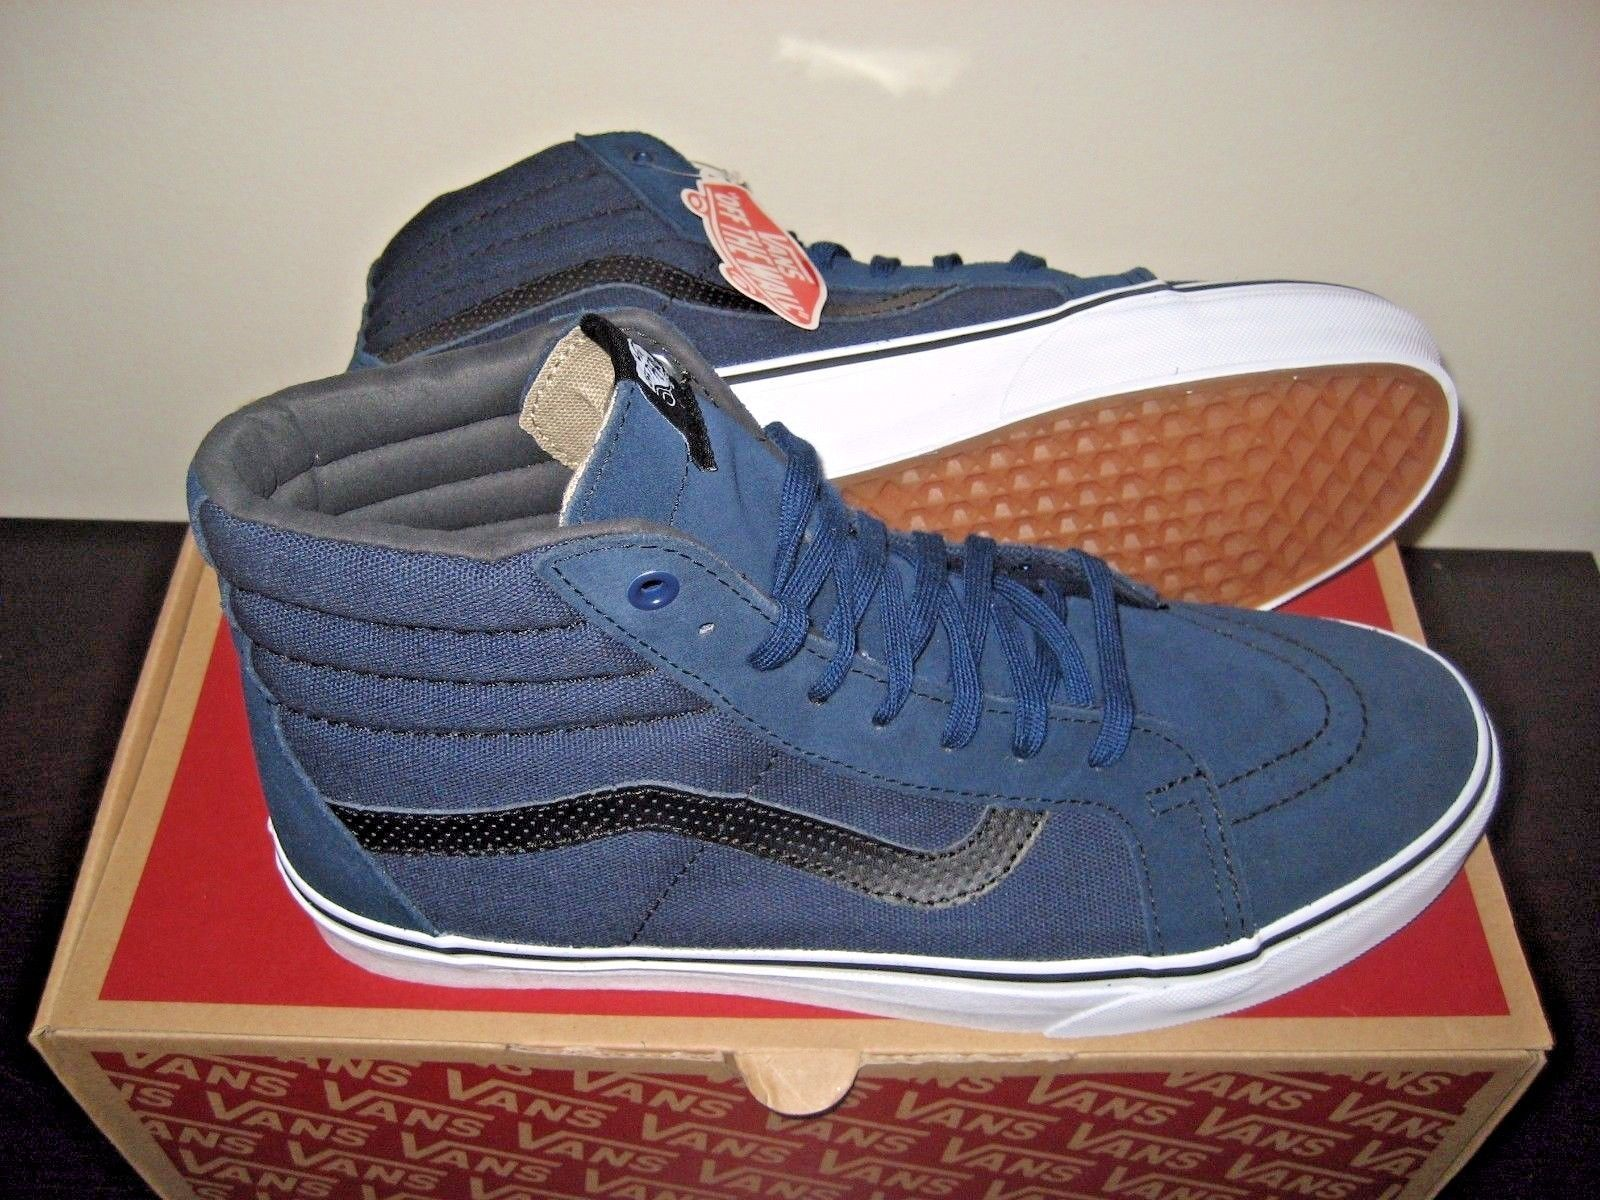 f477c9778a2e Vans Sk8-Hi Reissue Mens C P Dress Blues and 45 similar items. 57